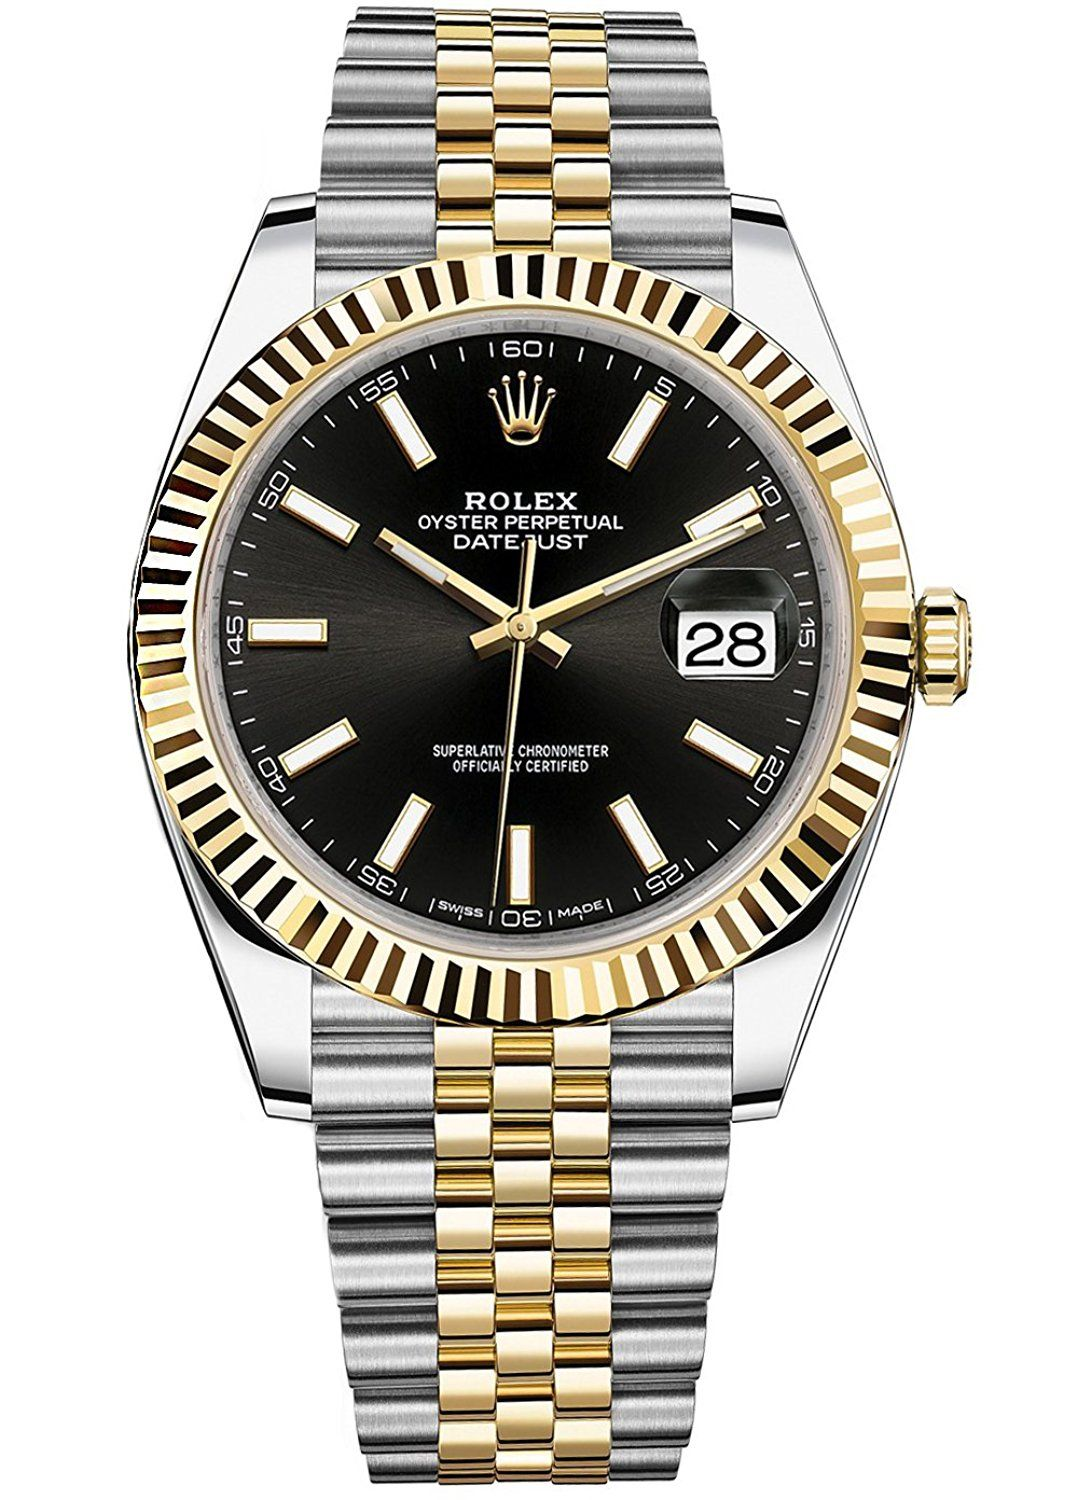 Rolex Datejust 41 Stainless Steel And 18k Yellow Gold Jubilee Watch Black Dial 126333 See This Awesome Image Coach Women Wat Orologi Rolex Orologio Rolex